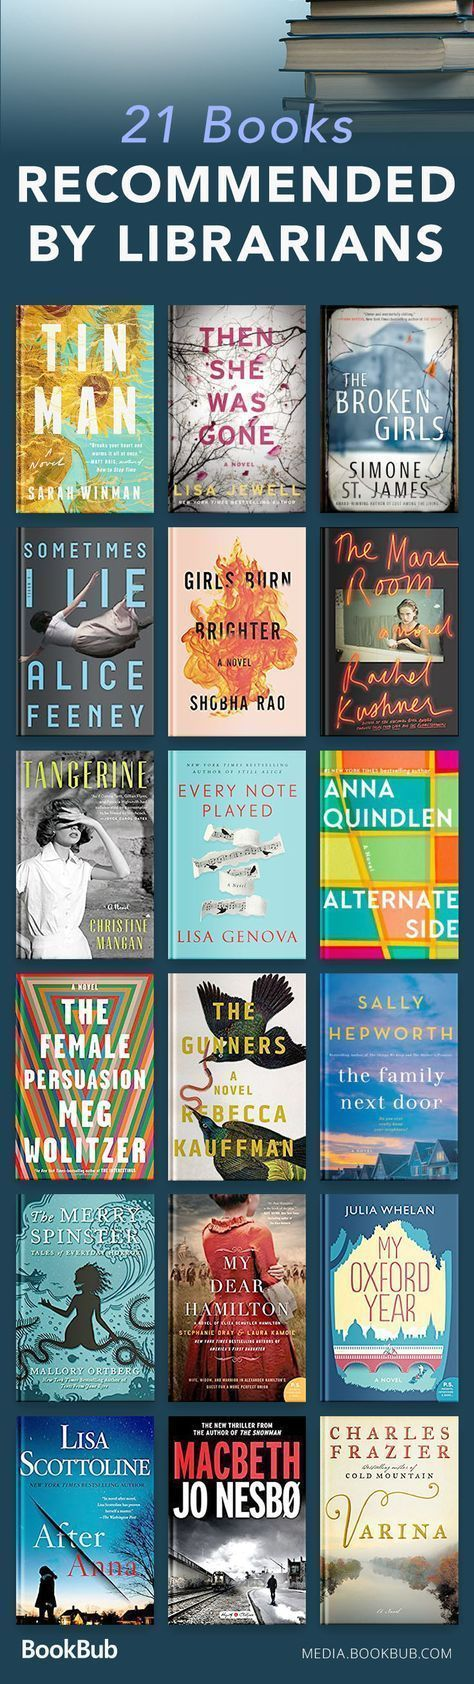 A reading list of books recommended by librarians, including new exciting fiction worth reading 2018.